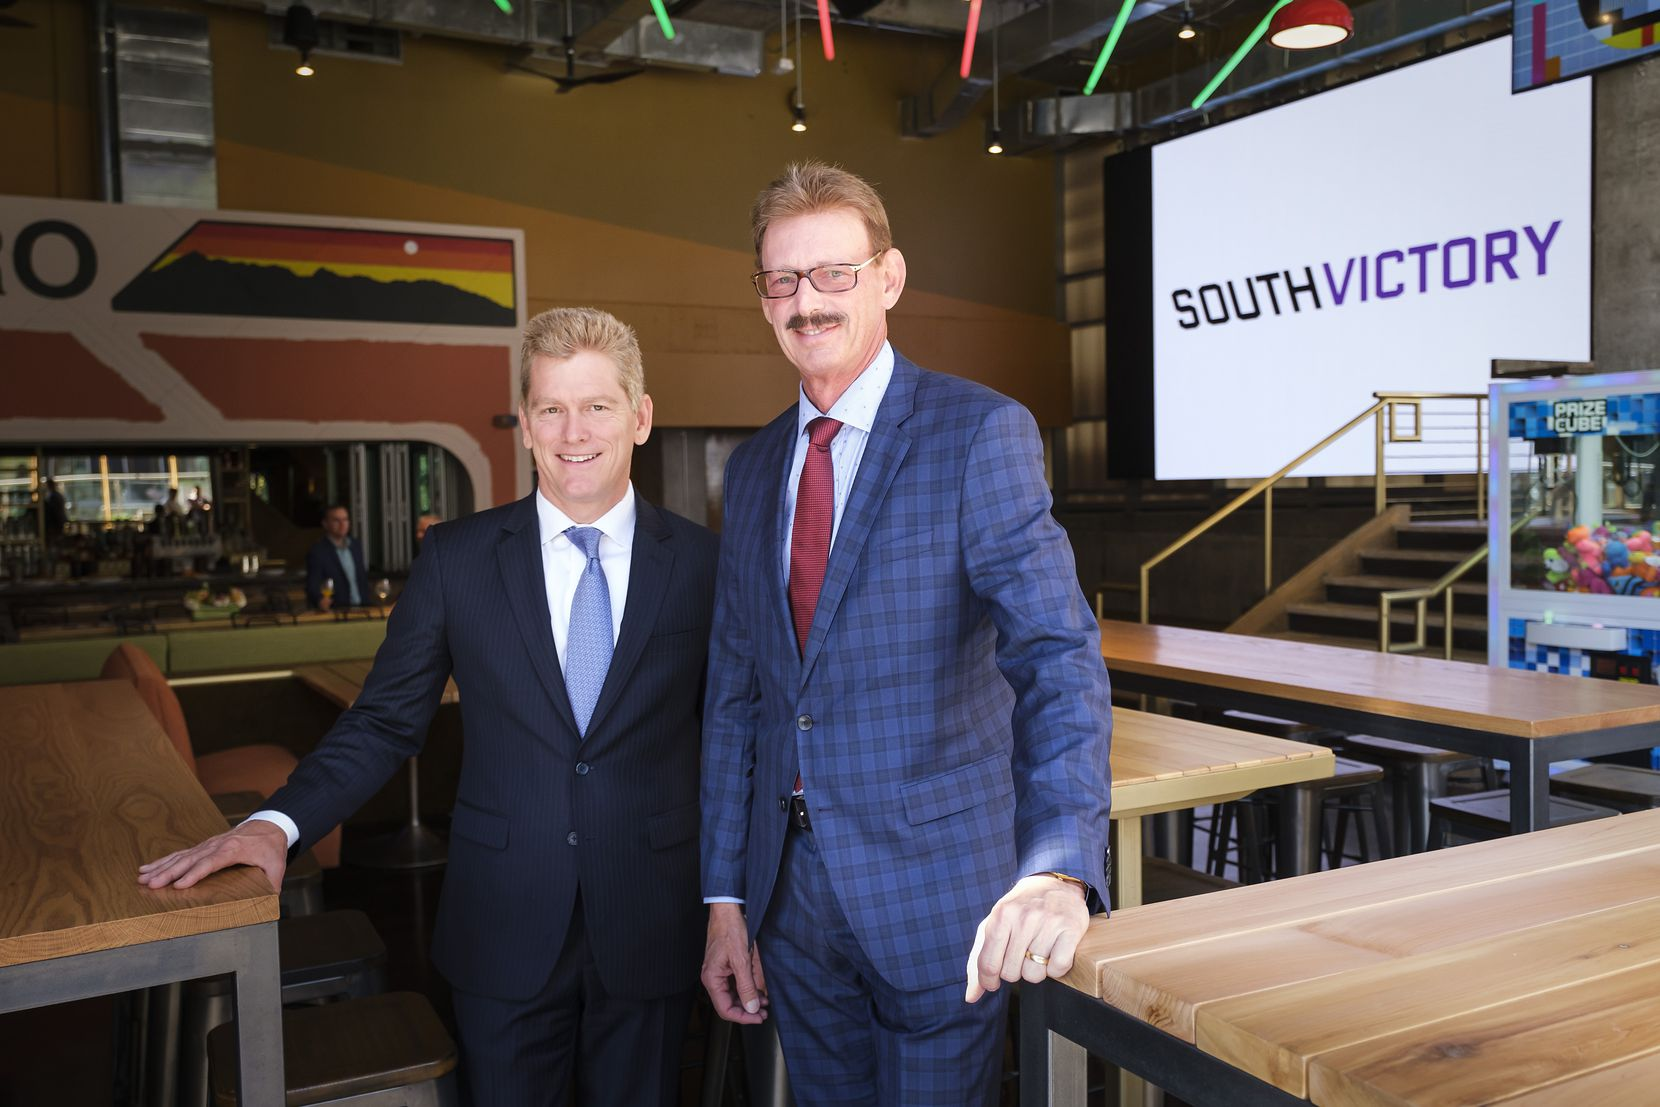 Victory Park president and owner Lothar Estein (right) and Lance Fair, chief operating officer and chief investment officer of Estein USA,  were in Dallas this week to celebrate the project's success 10 years after it faced foreclosure.